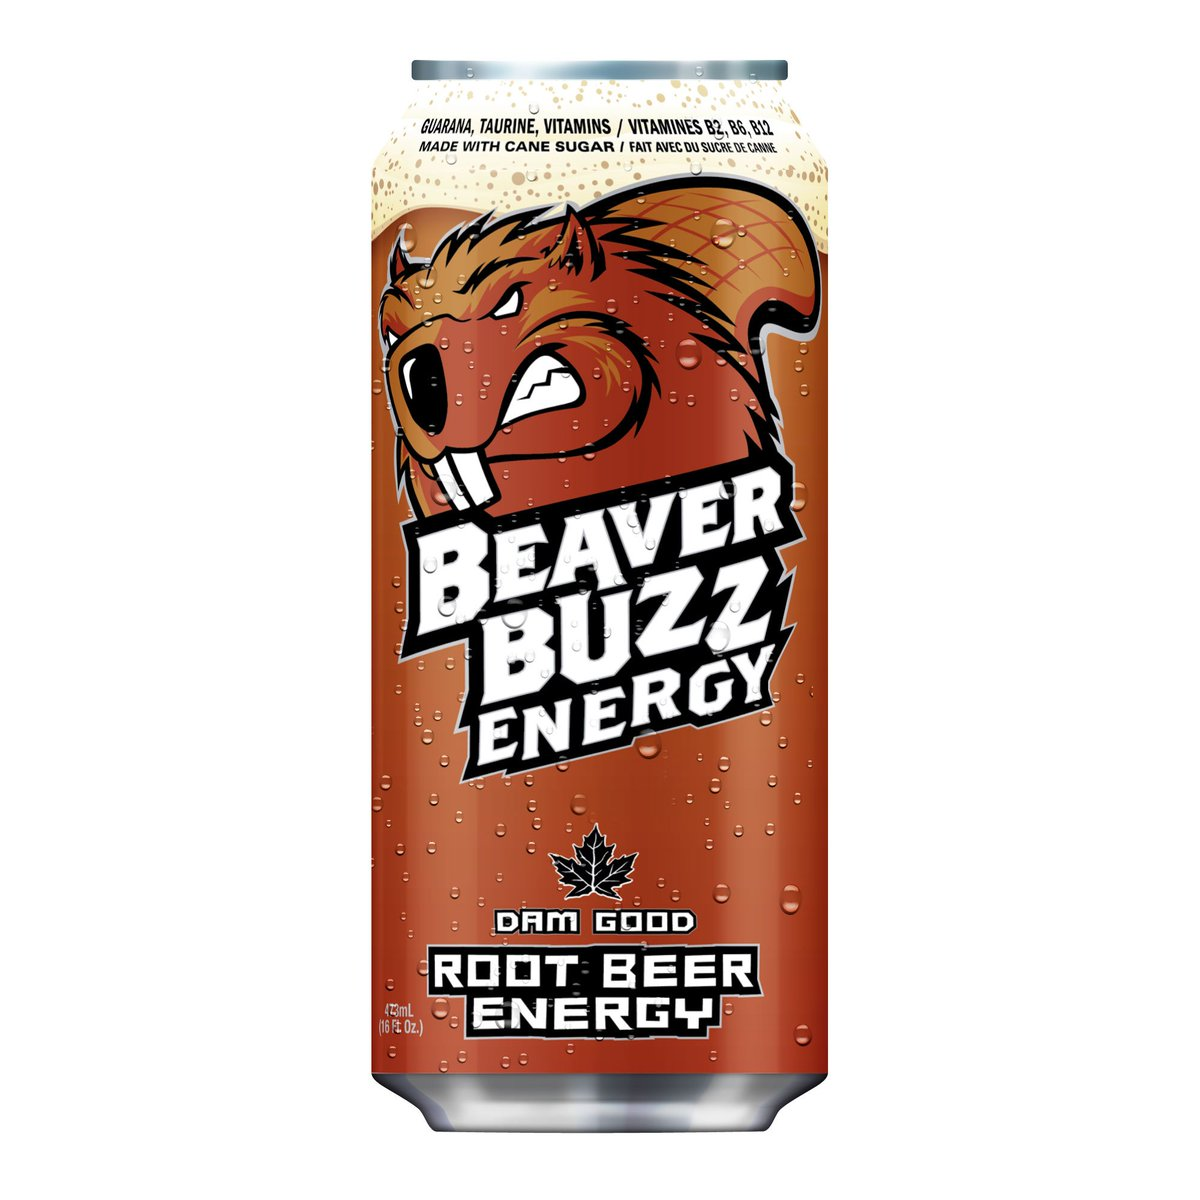 Coming very soon to a @GNCCanada near you! #GNCCanada #BeaverBuzz #DamGood #RootBeer #Energy #BC #AB #SK #MB #ON #QC #NB #NS #PE #NL #Canada<br>http://pic.twitter.com/QgY9uwUgGi